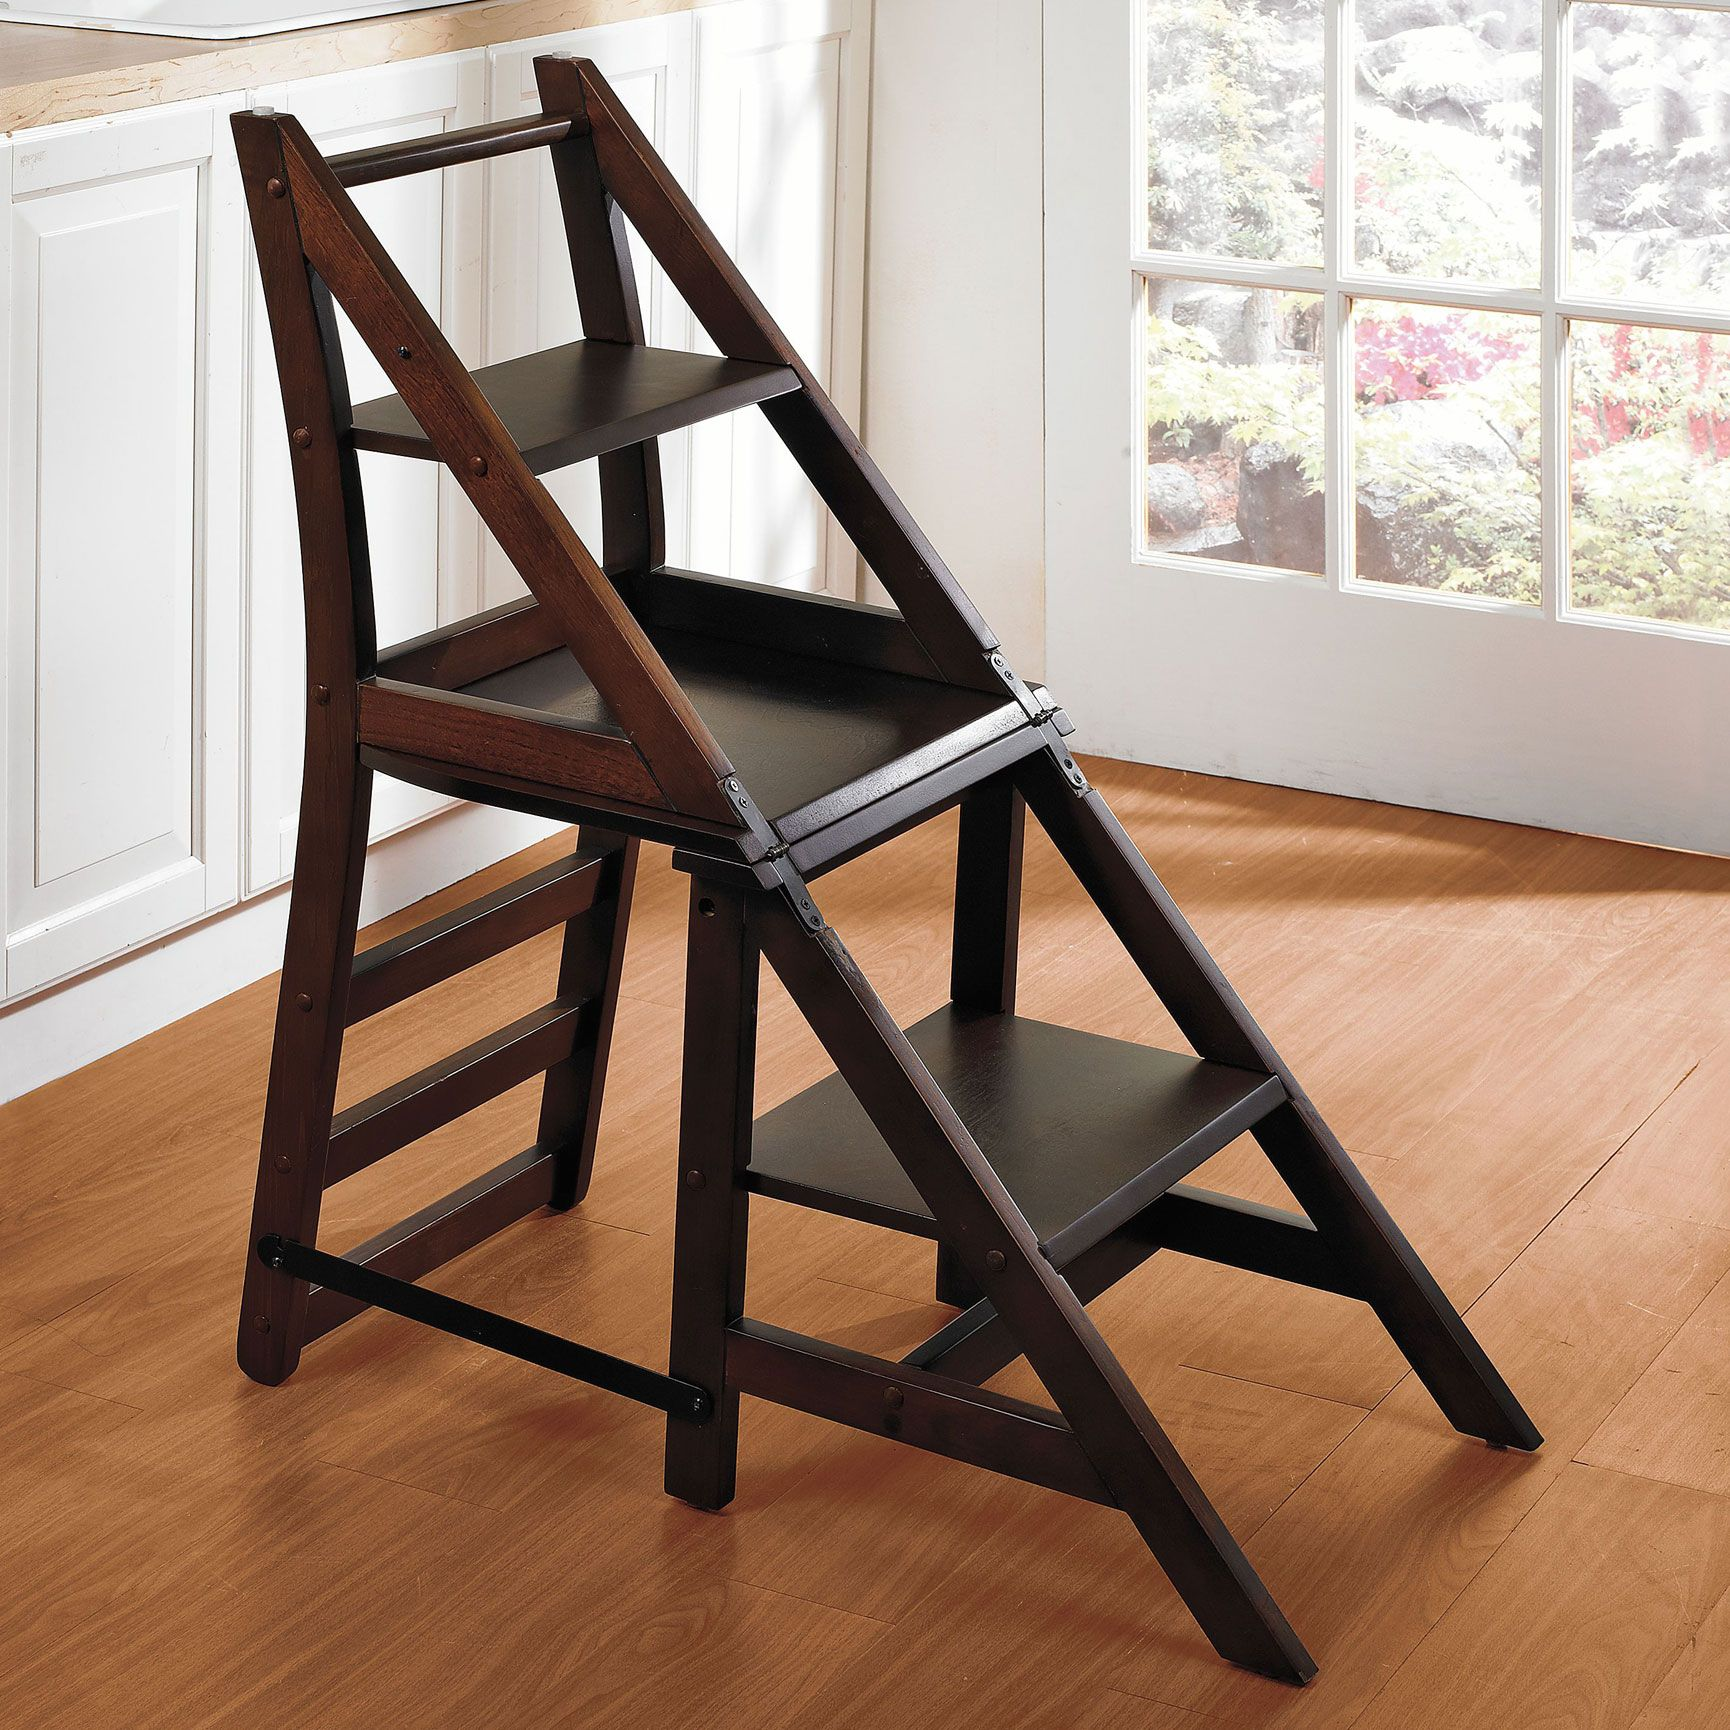 2 In 1 Step Ladder Chair Step Stools Brylanehome Home